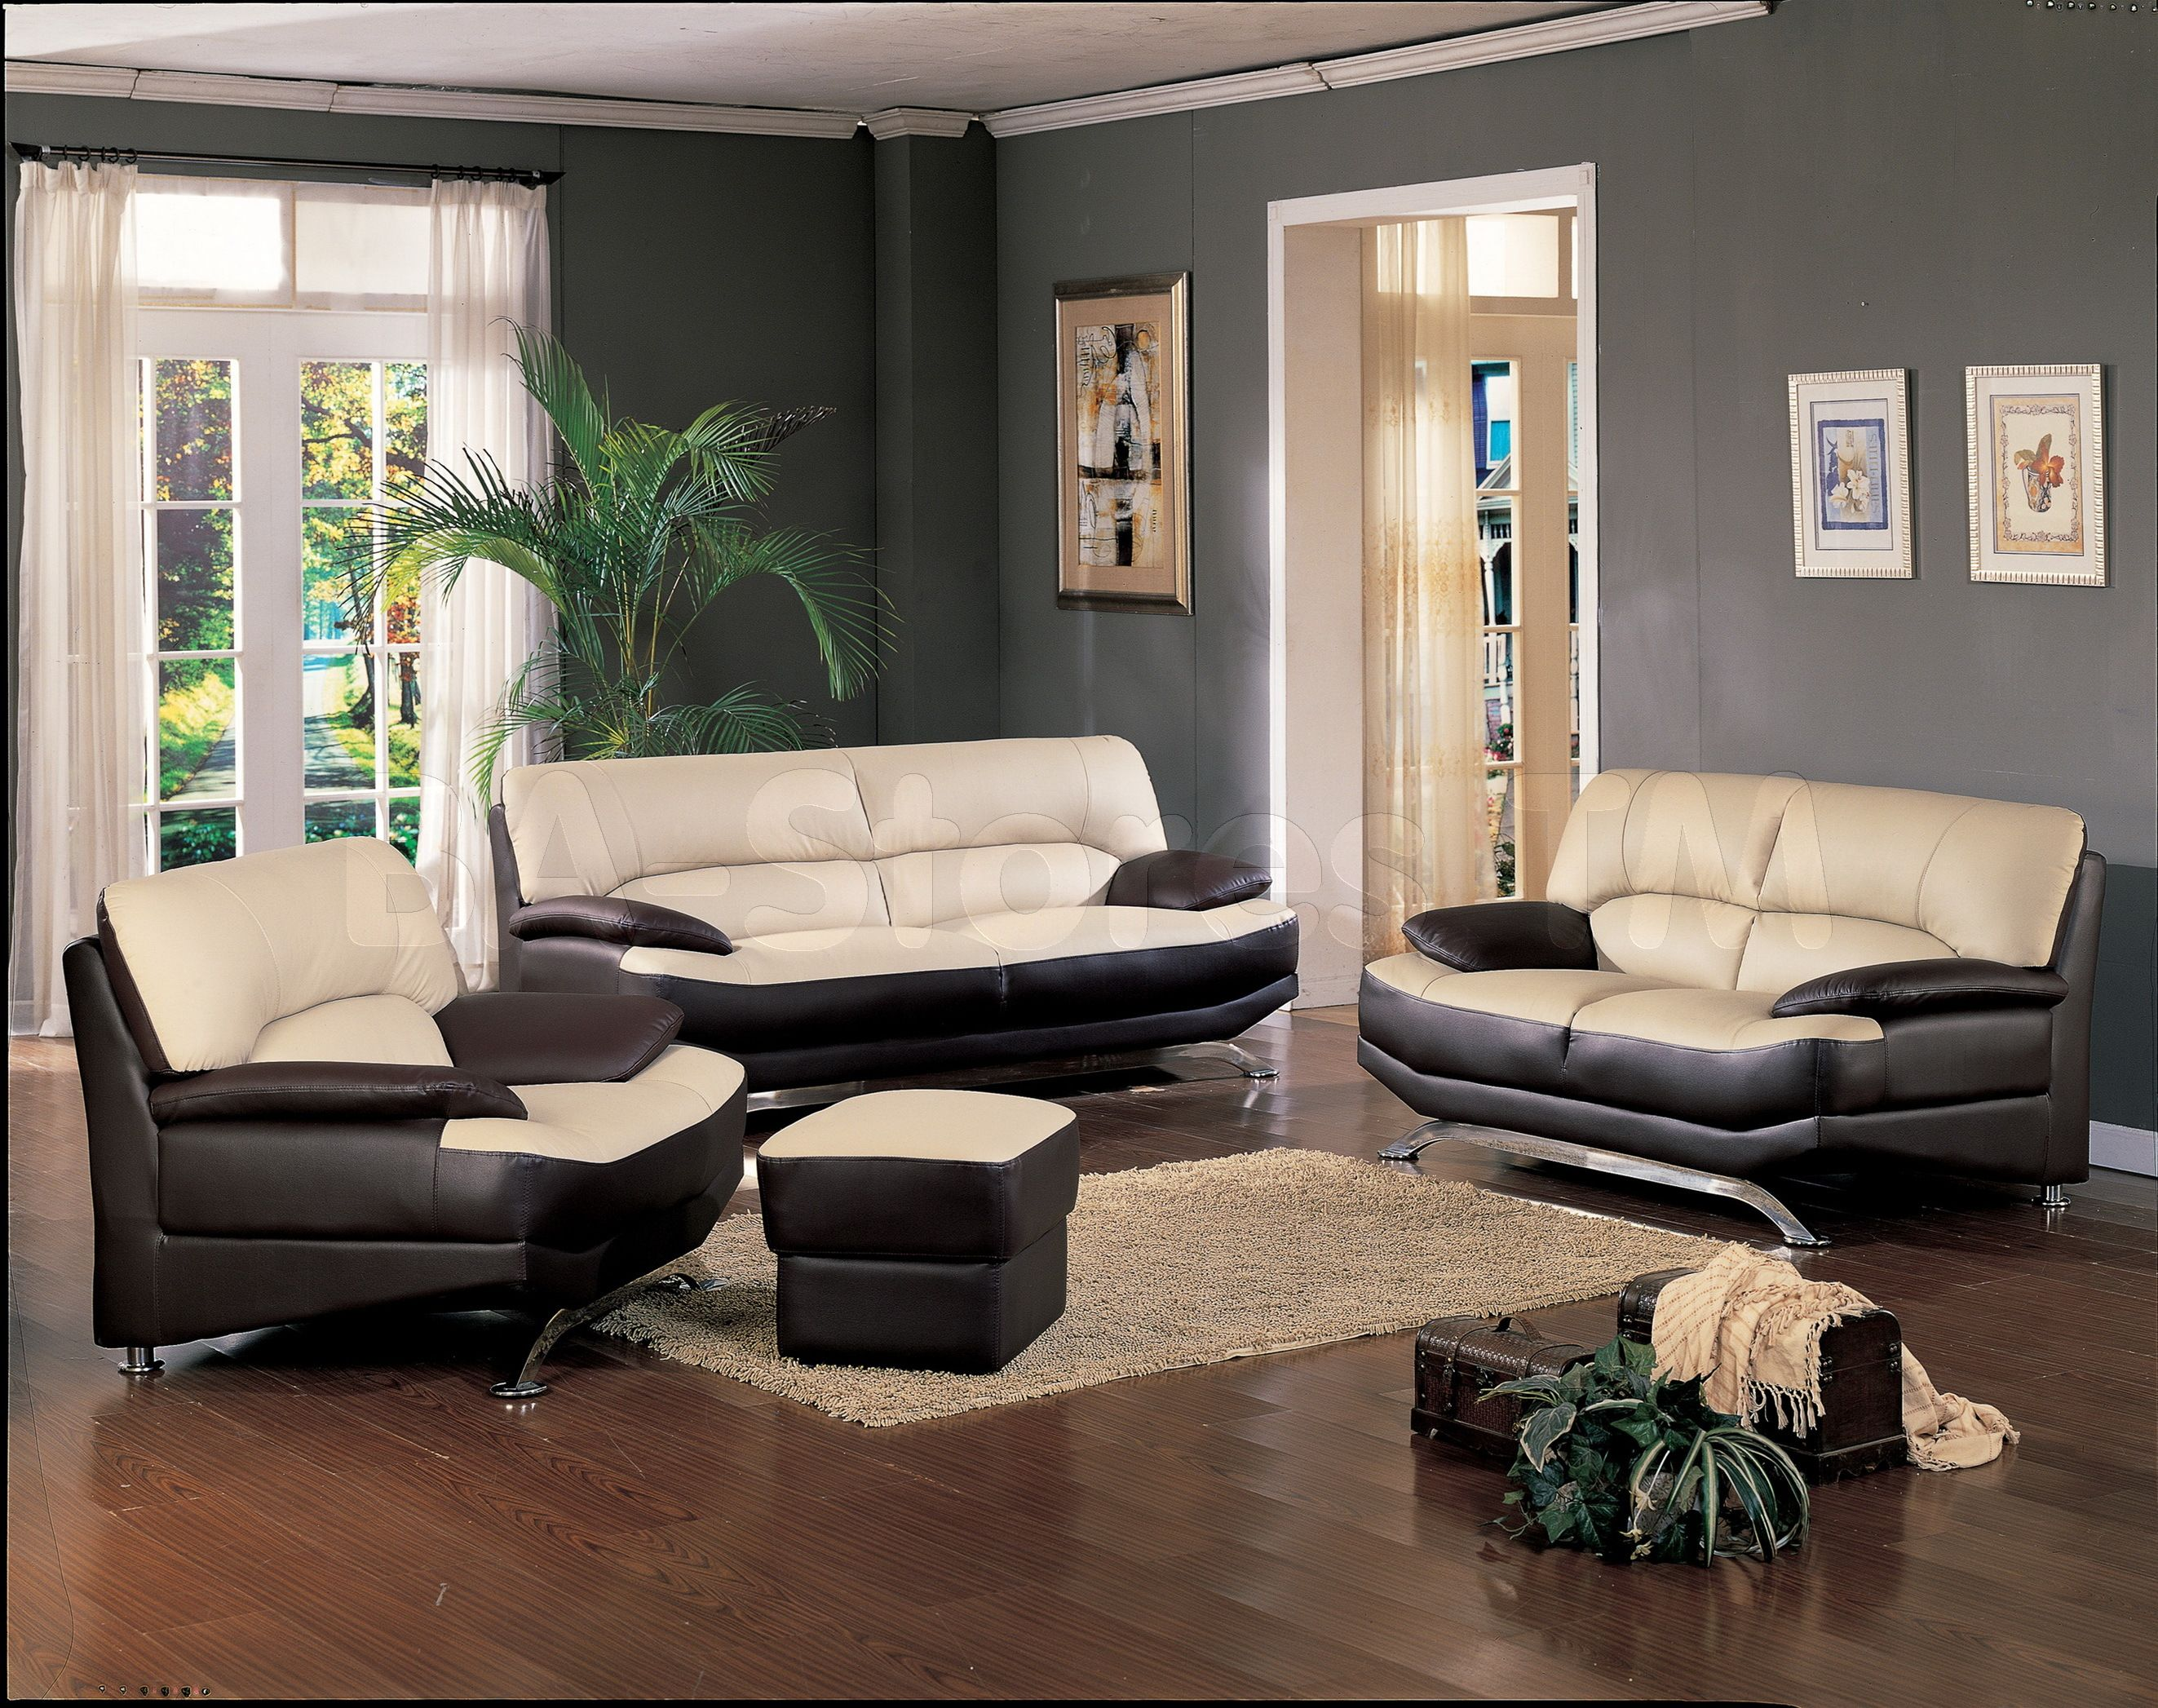 Leather Furniture For Living Room 27 Best Images About Living Room Leather Furniture On Pinterest